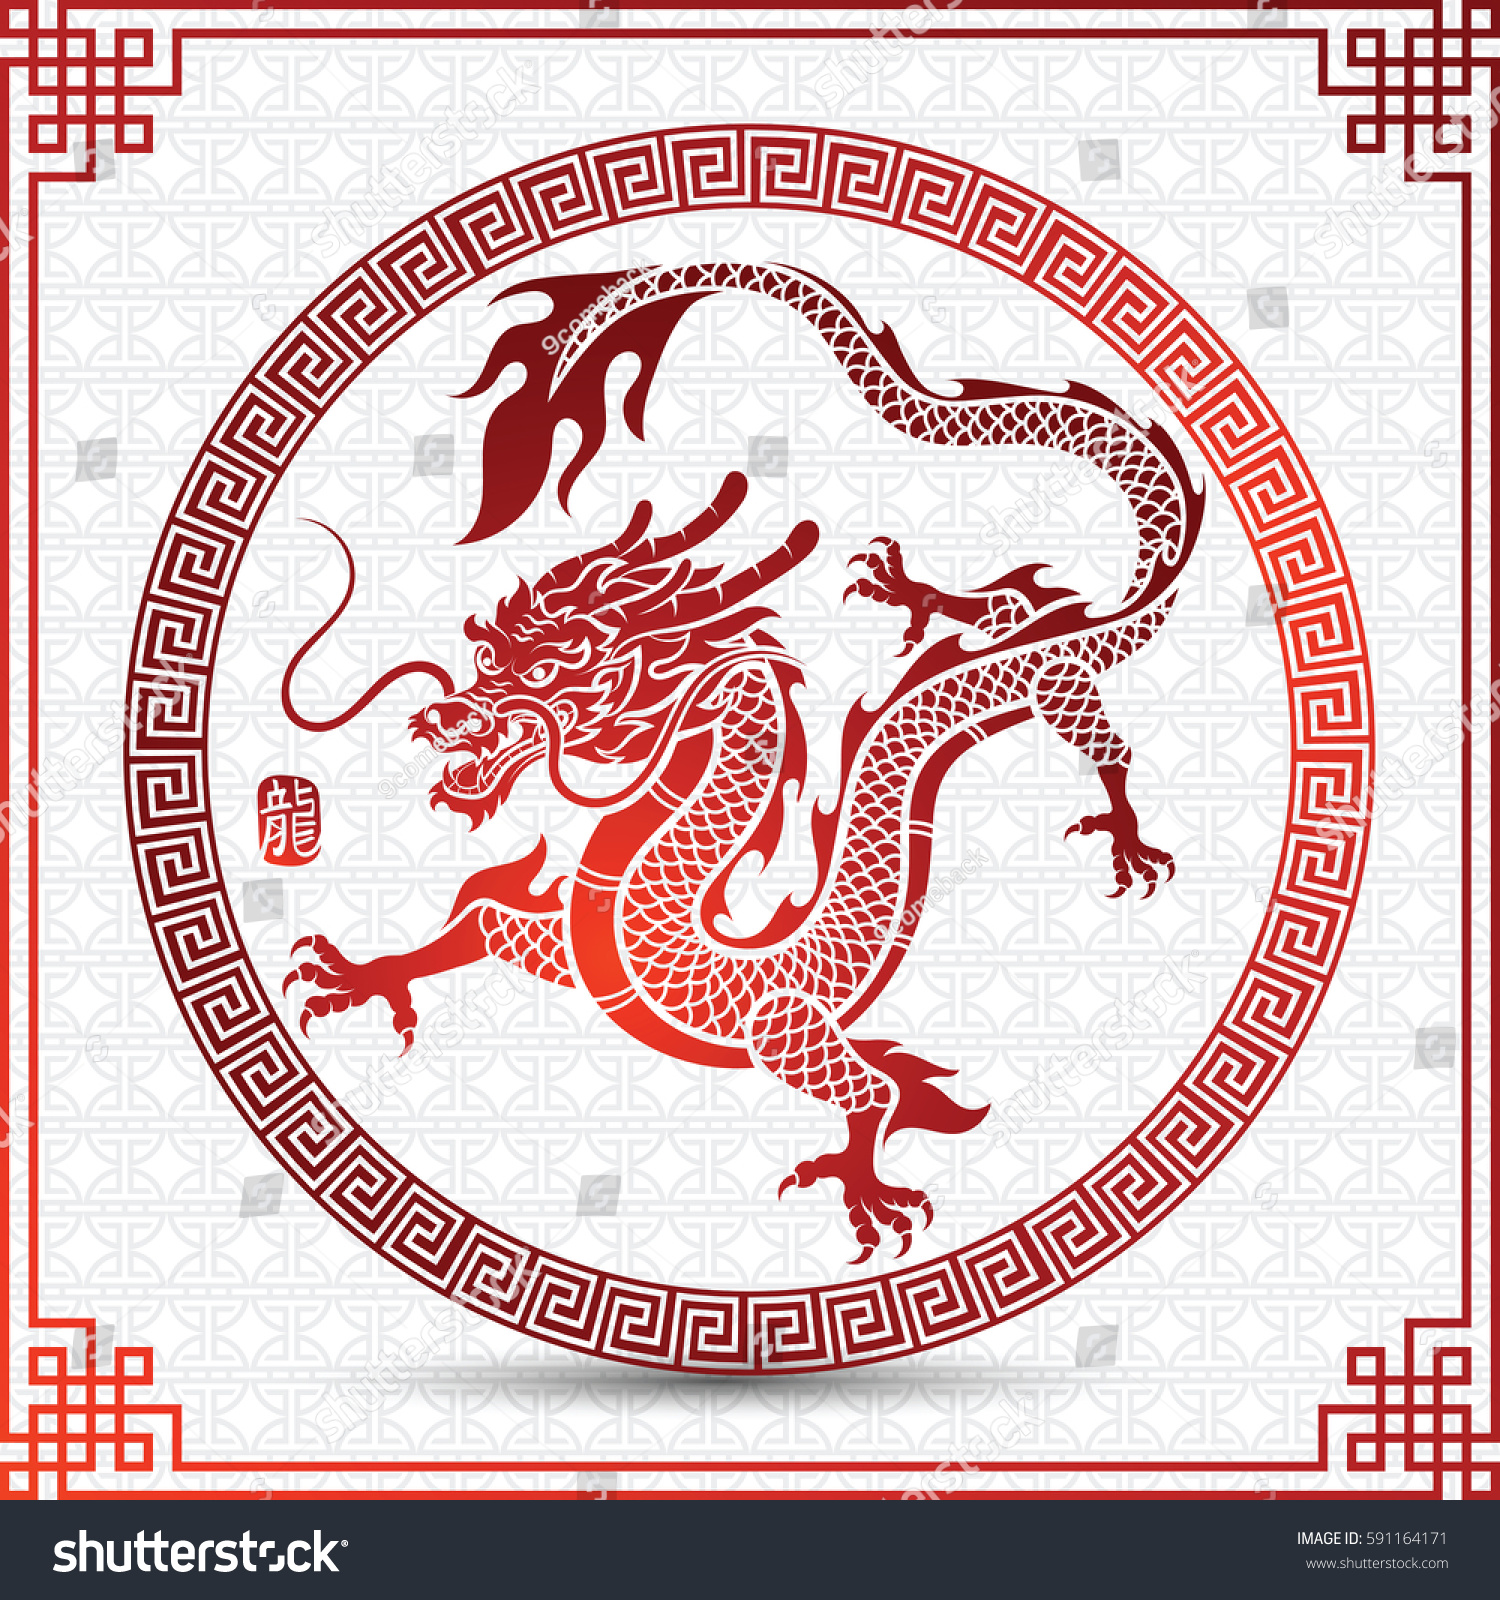 Illustration Traditional Chinese Dragon Chinese Circle Stock Vector